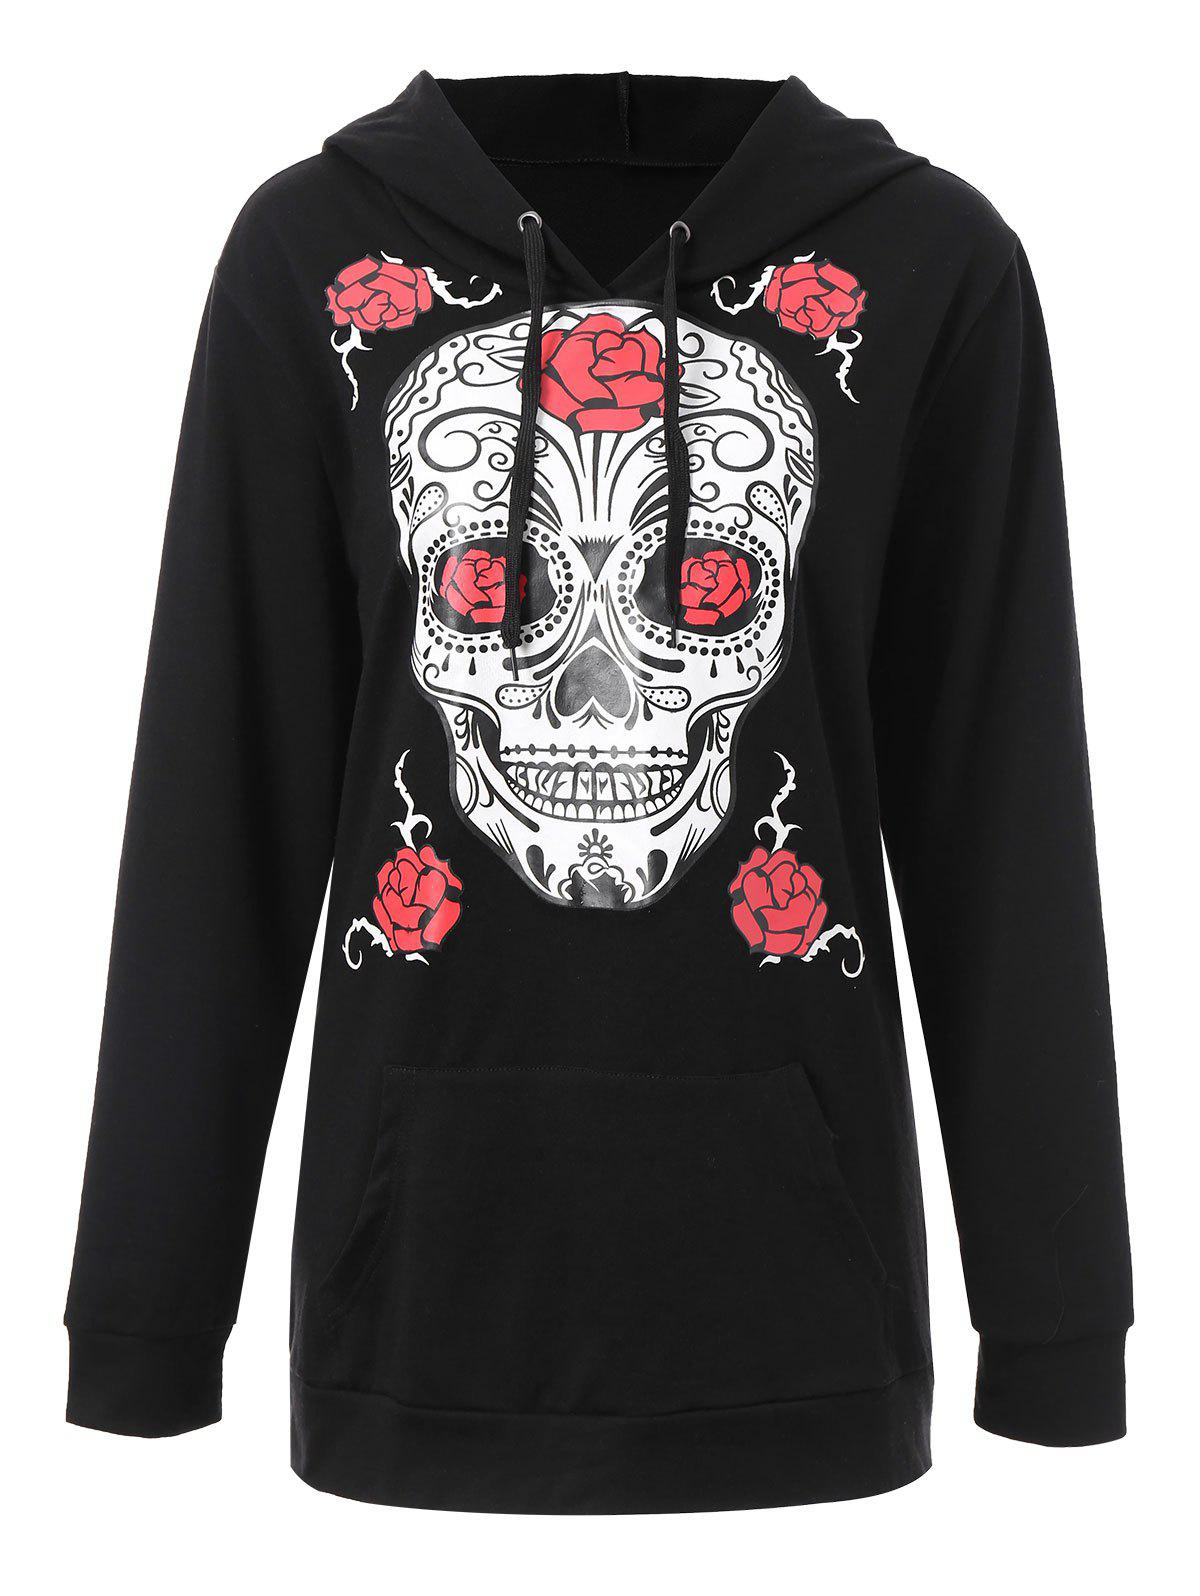 Plus Size Halloween Skull Floral Graphic Hoodie - BLACK XL